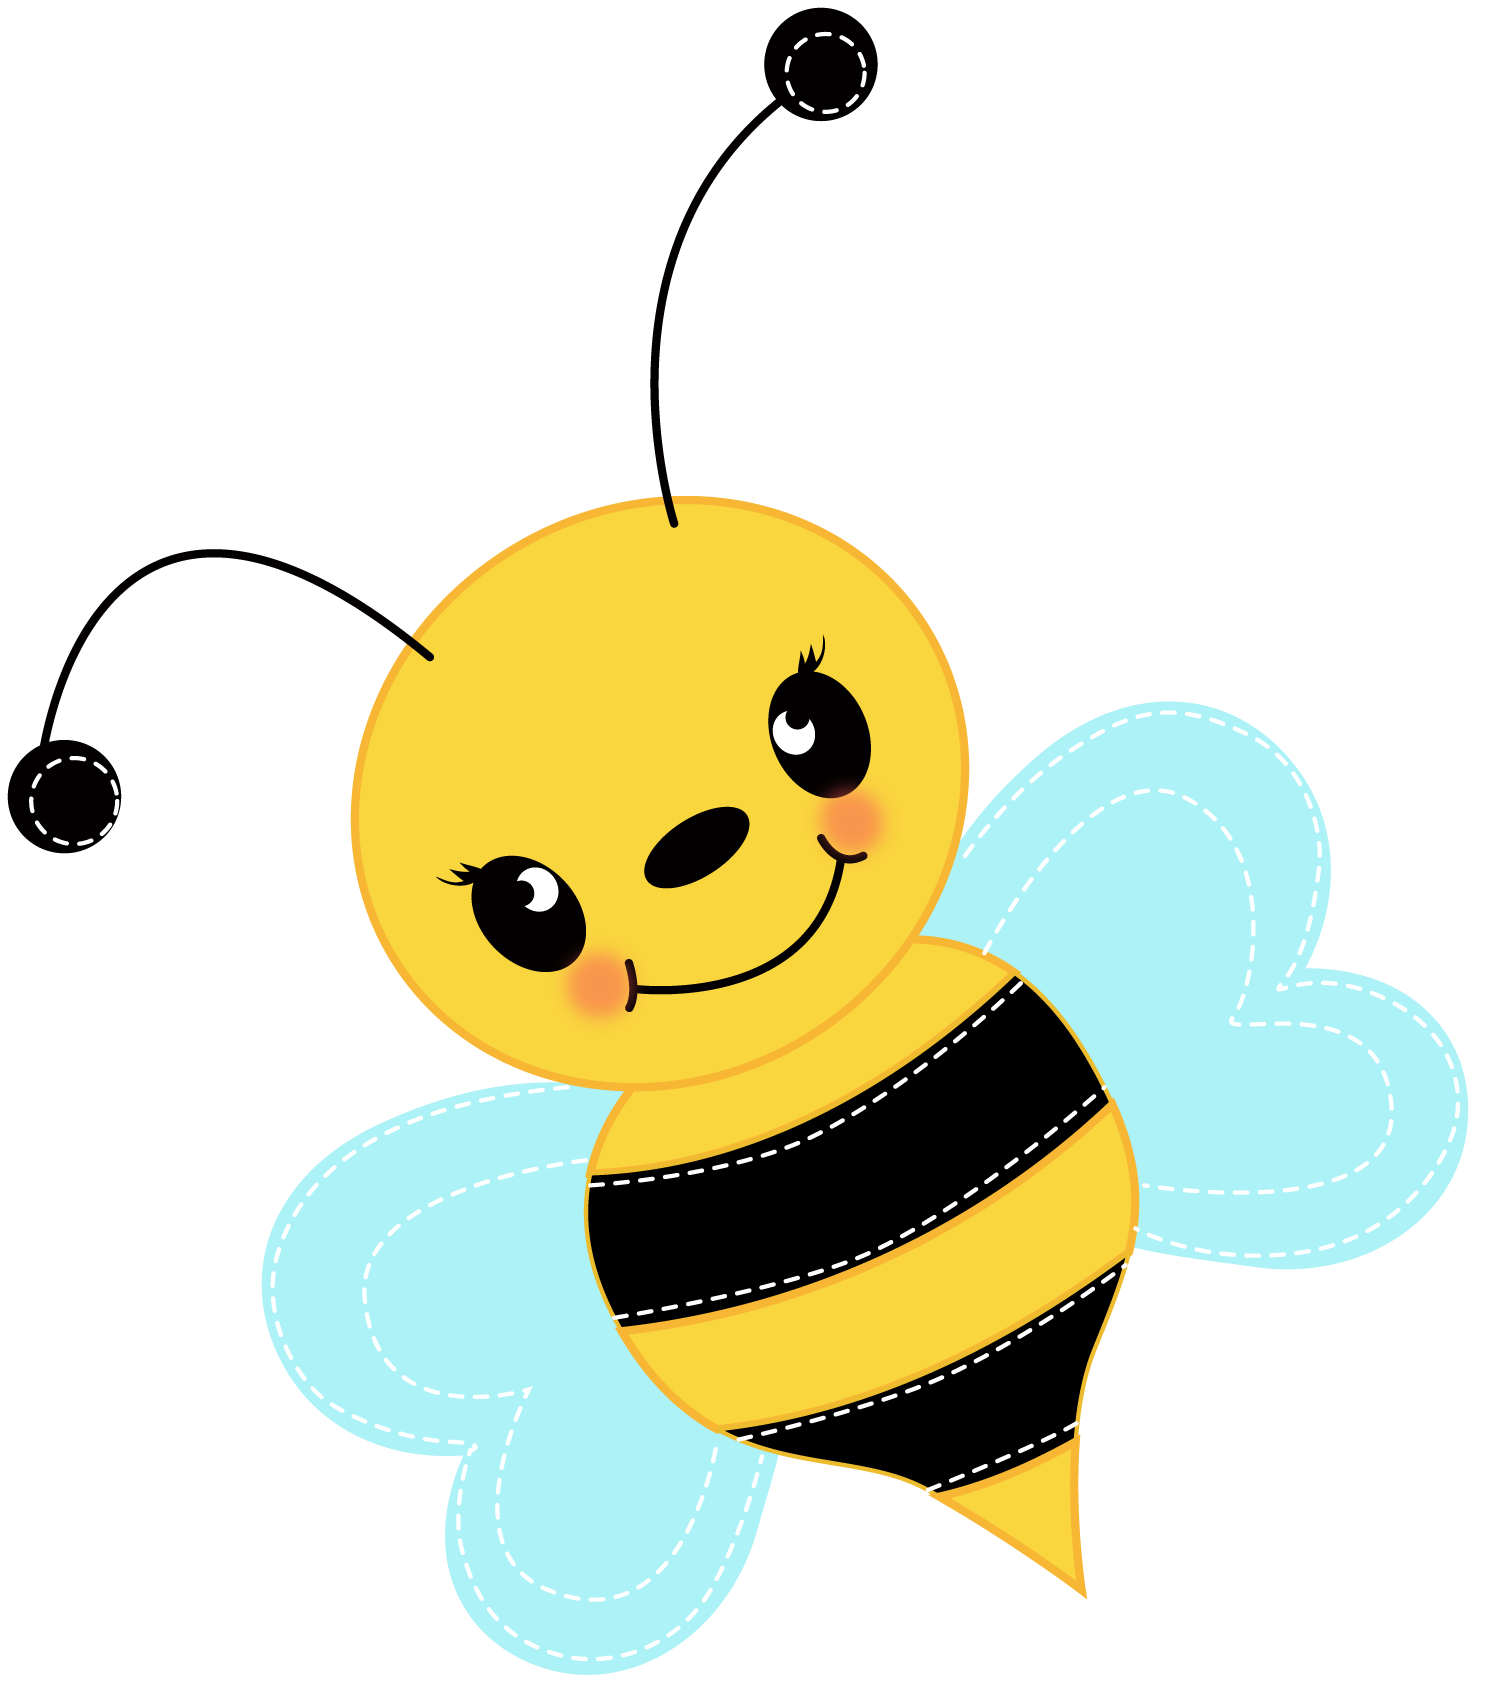 clip art royalty free stock Bumble clipart busy bee. Free cute clip art.